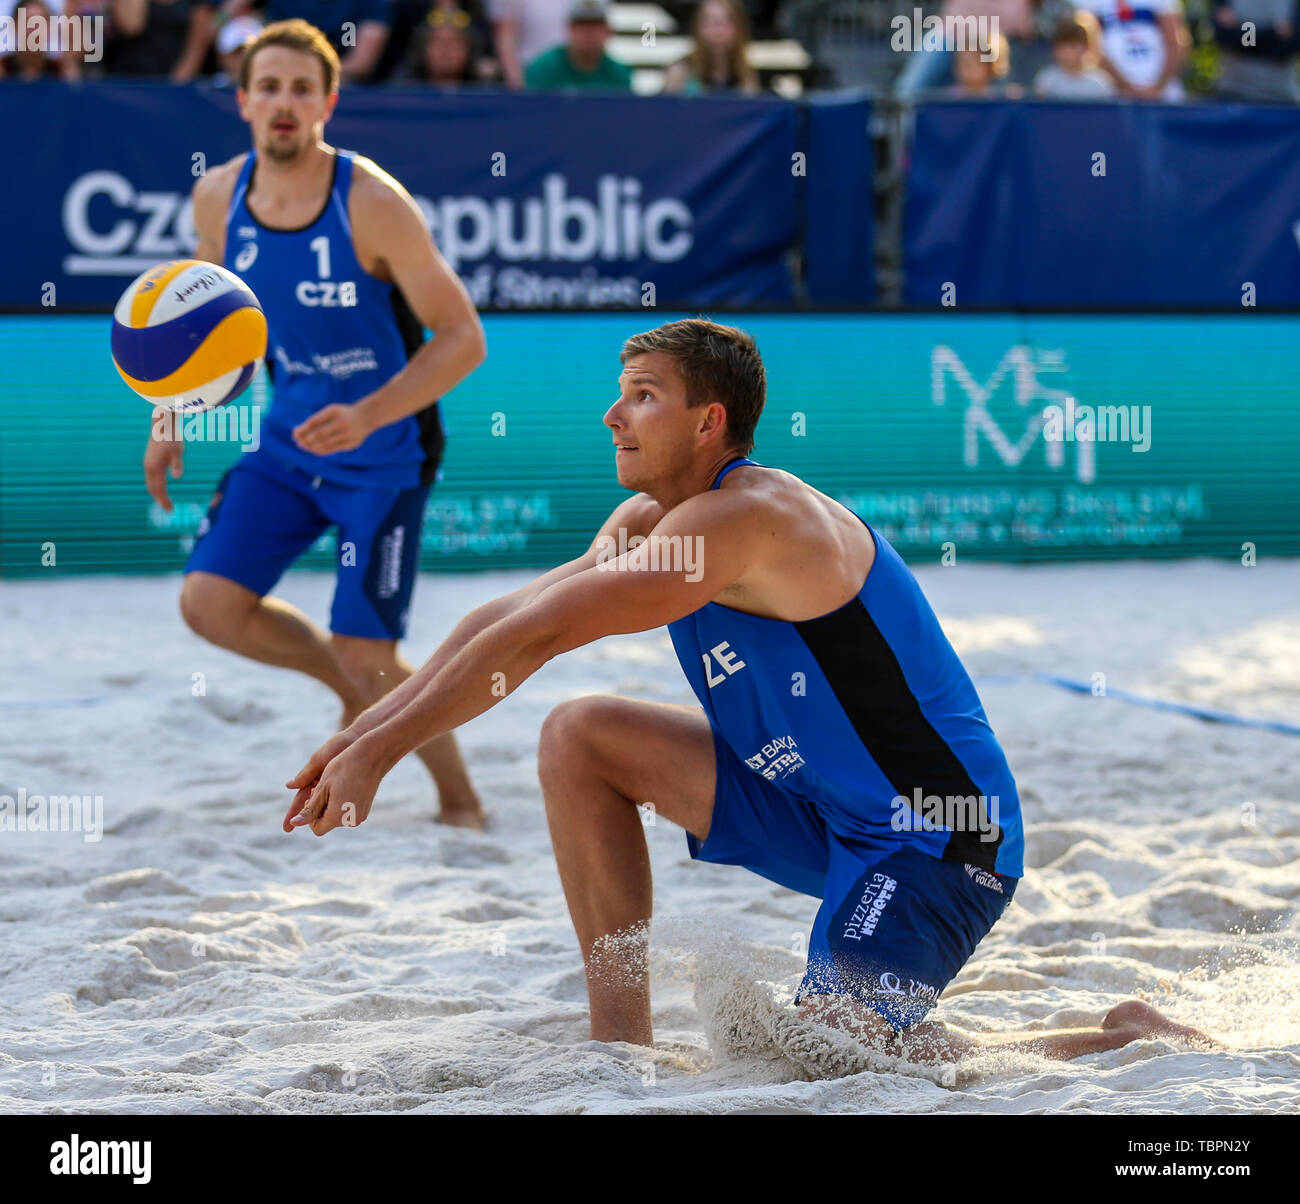 Ostrava, Czech Republic. 01st June, 2019. R-L David Schweiner and Ondrej Perusic (Czech) are seen during the four-star J&T Banka Ostrava Beach Open 2019, part of the FIVB Beach Volleyball World Tour, in Ostrava, Czech Republic, on July 1, 2019. Credit: Vladimir Prycek/CTK Photo/Alamy Live News Stock Photo